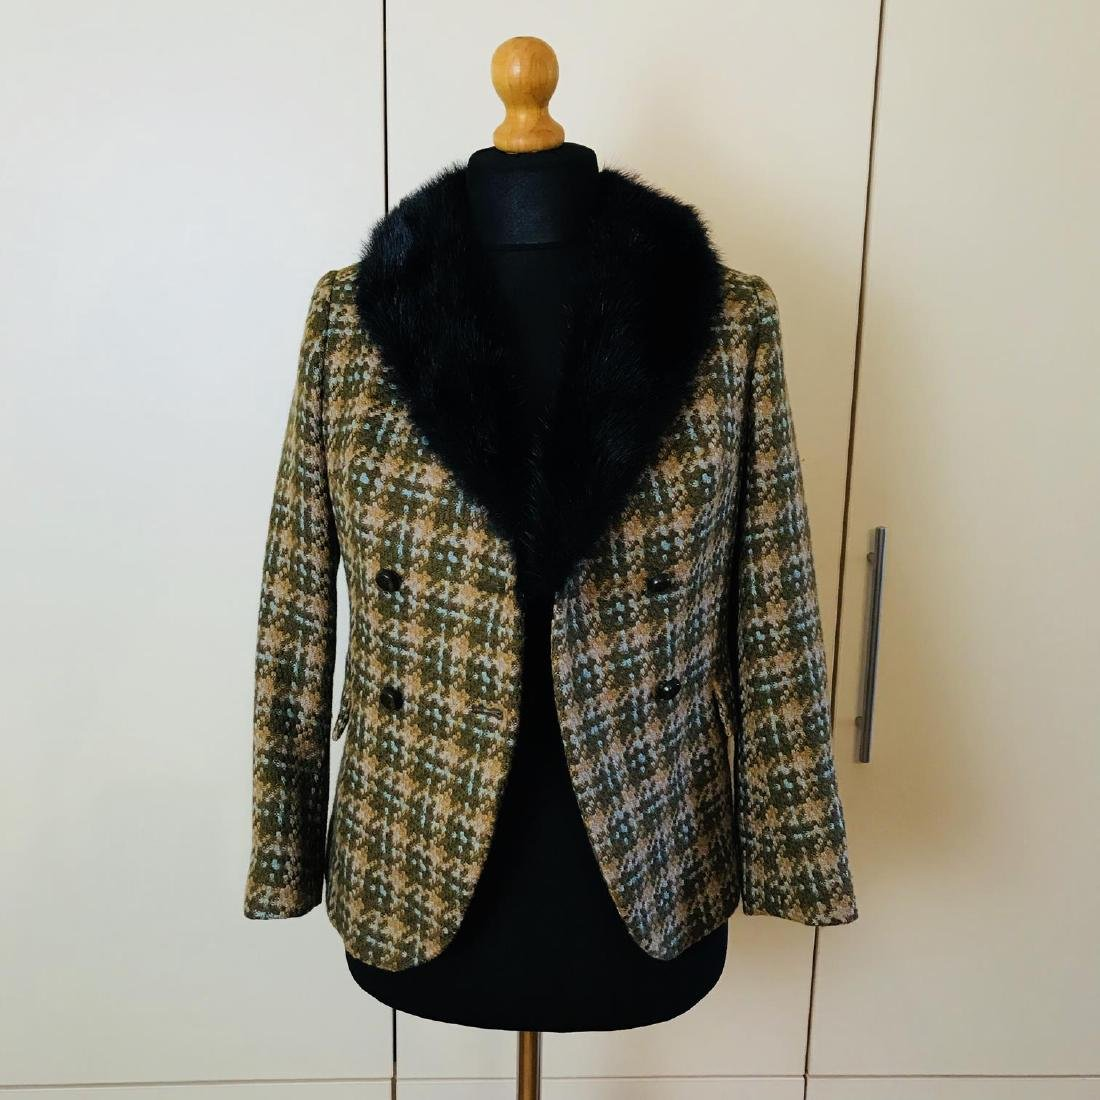 Vintage Women's Designer Jacket Blazer with Real Fur